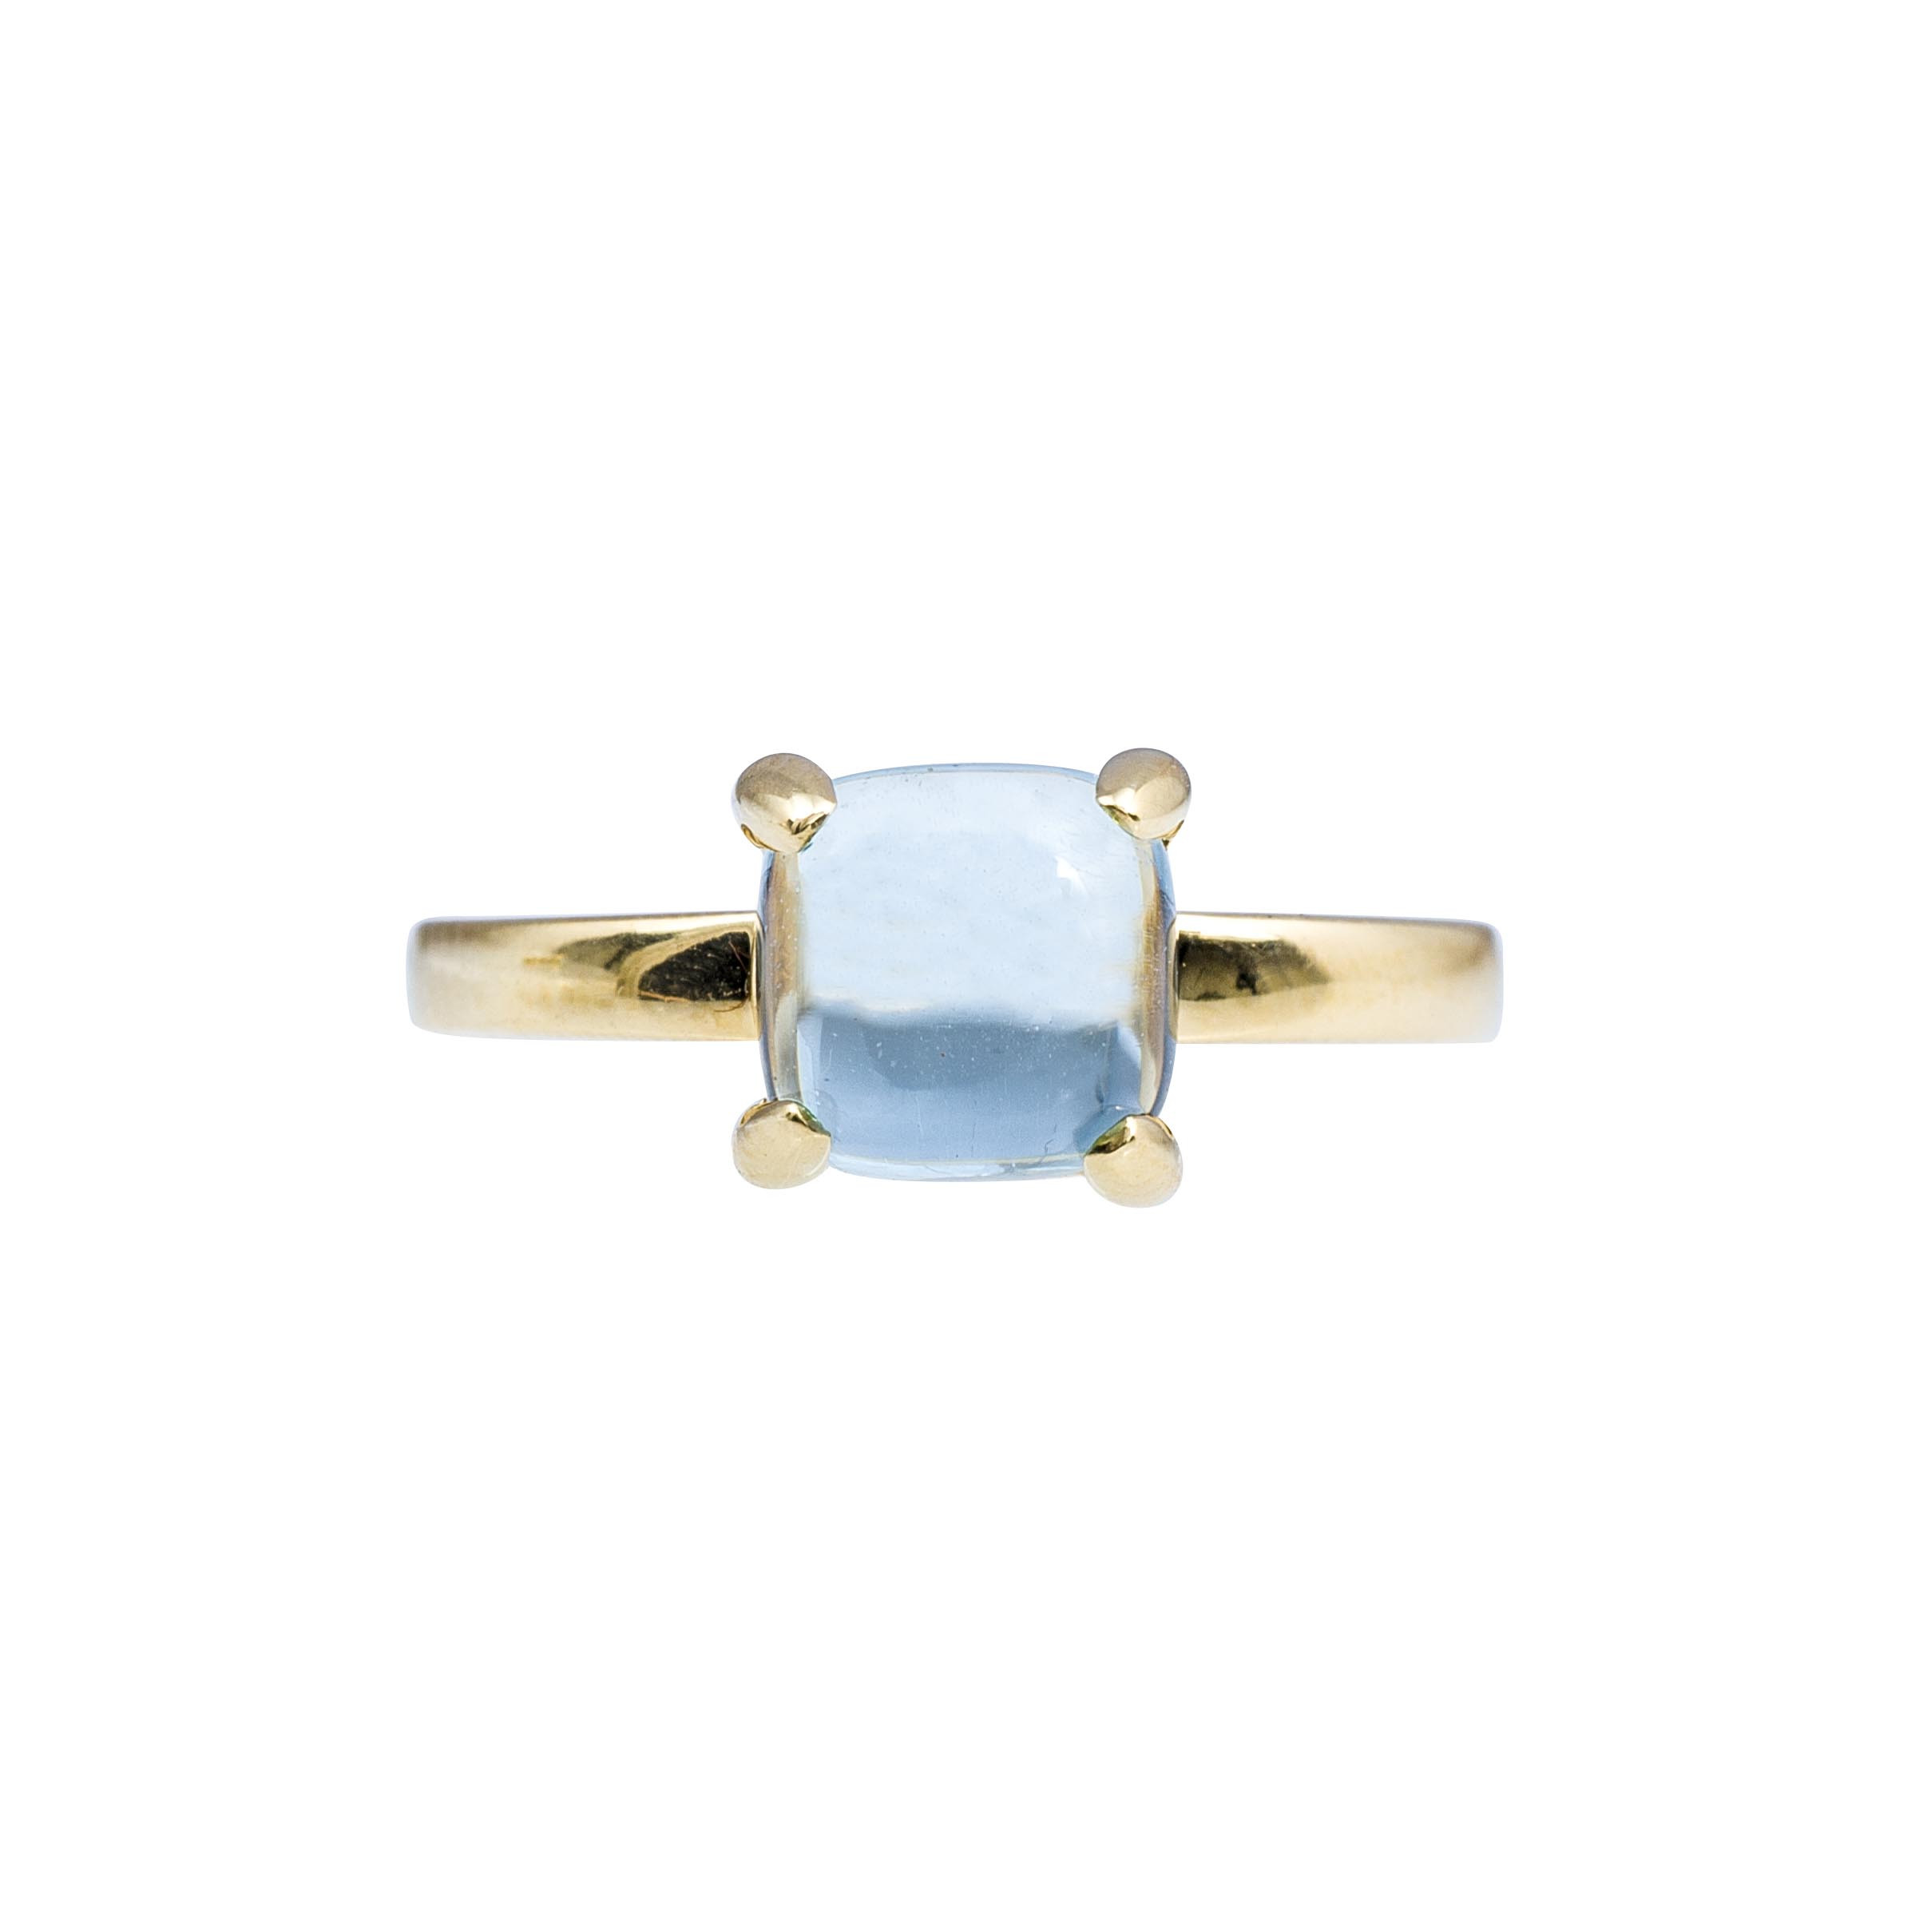 1420c8266 Indentifying header for breadcrumps-wrapper. Home; Vintage Tiffany & Co.  Paloma Picasso Sugar Stacks Blue Topaz Ring